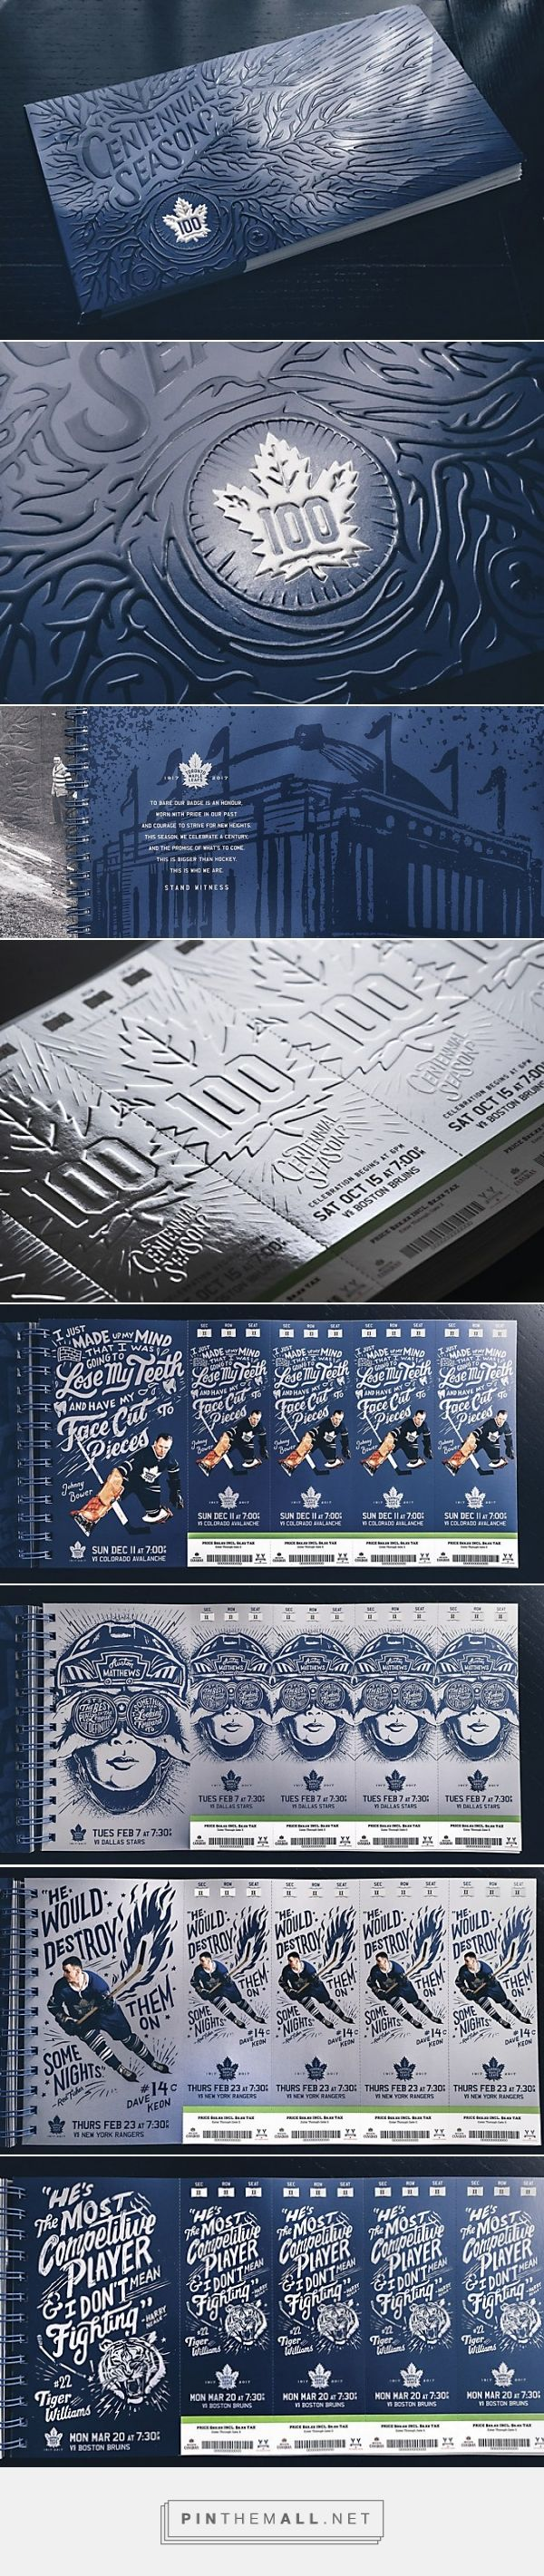 Toronto Maple Leafs ticket package - created via https://pinthemall.net